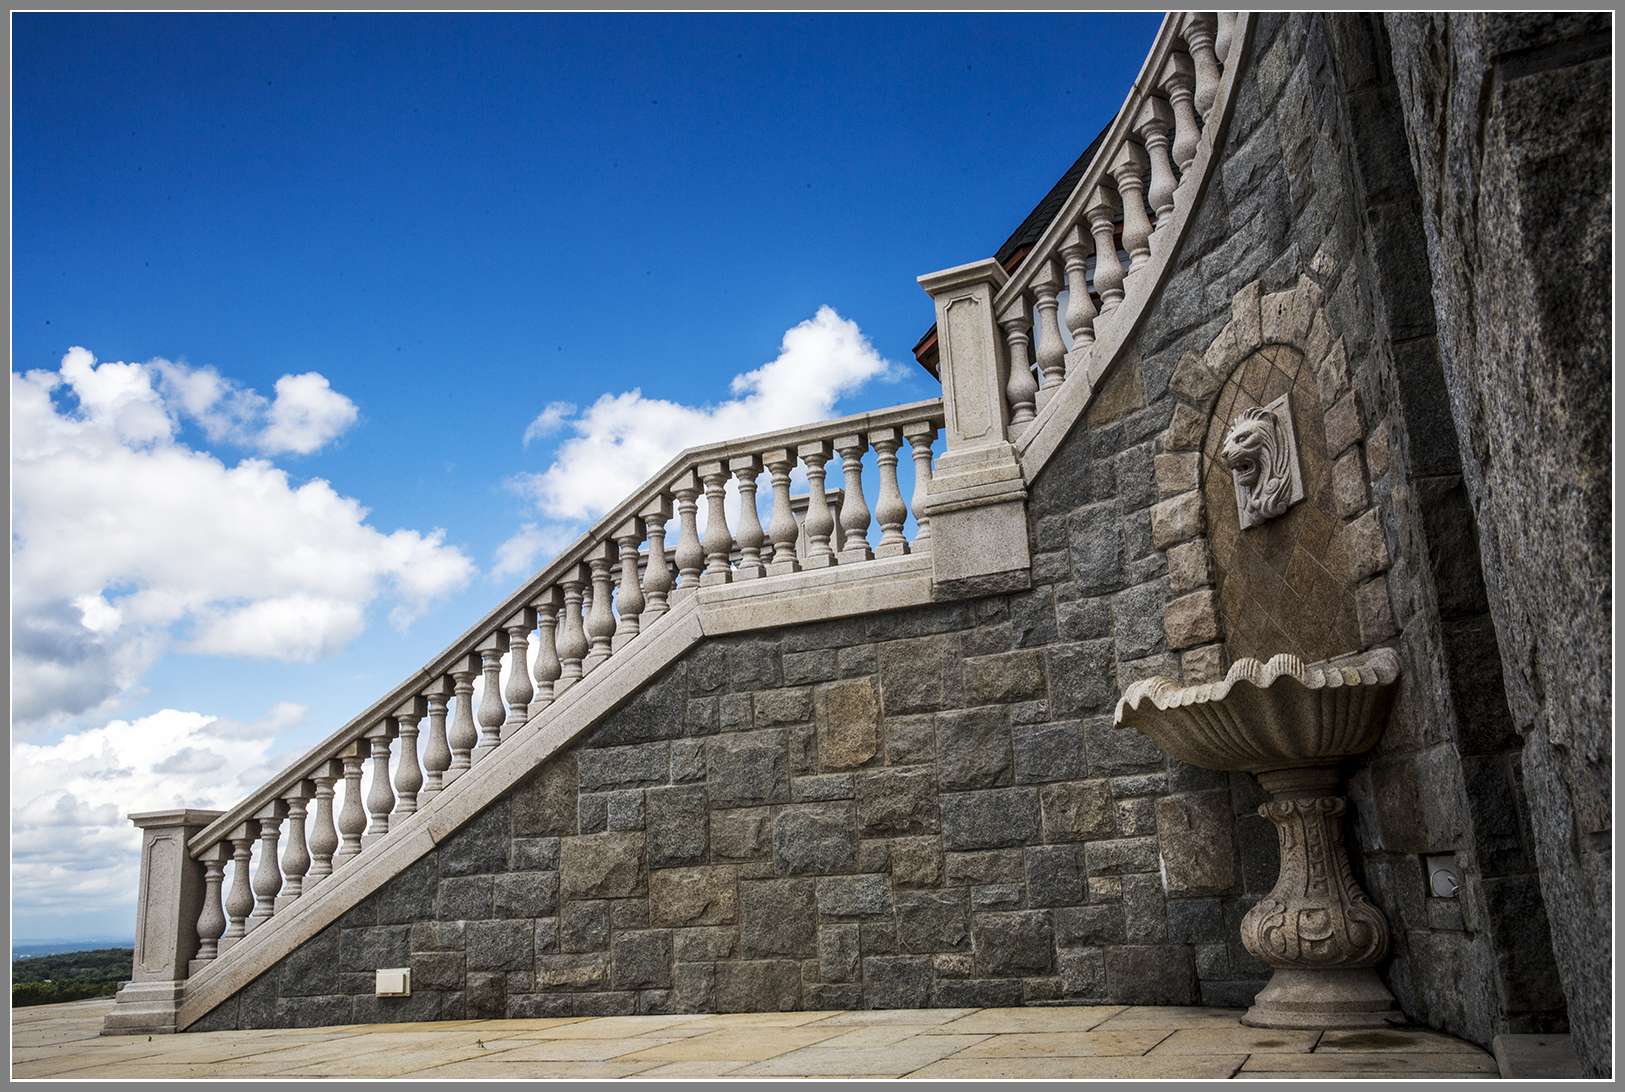 Stair granite balustrade systrem